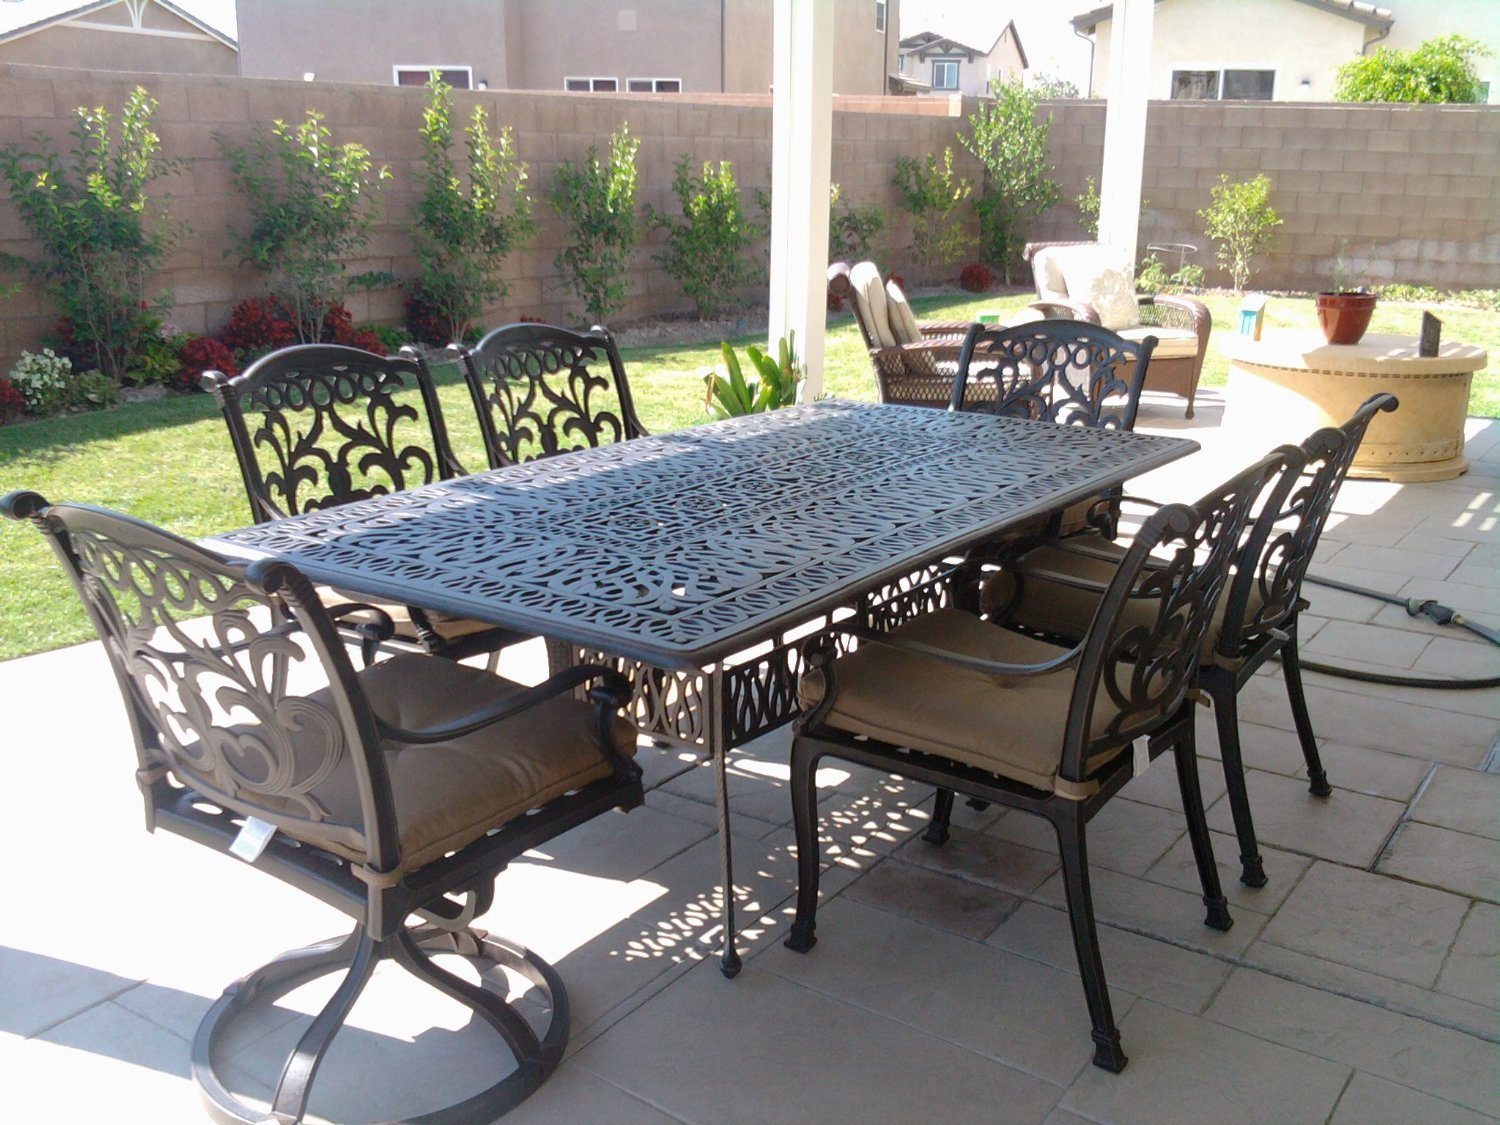 "Theworldofpatio Mandalay Cast Aluminum Powder Coated 7pc Outdoor Patio Dining Set with 44""x84"" Rectangle Table - Antique Bronze - 15-year Frame Limited Warranty Solid Cast Aluminum Frame - Non Rust Guarantee Five Stage Powder Coated Finish is Best In Class for Cast Aluminum Furniture - Elegant Antique Bronze Finish - patio-furniture, dining-sets-patio-funiture, patio - 81Ygtv7ZMqL -"